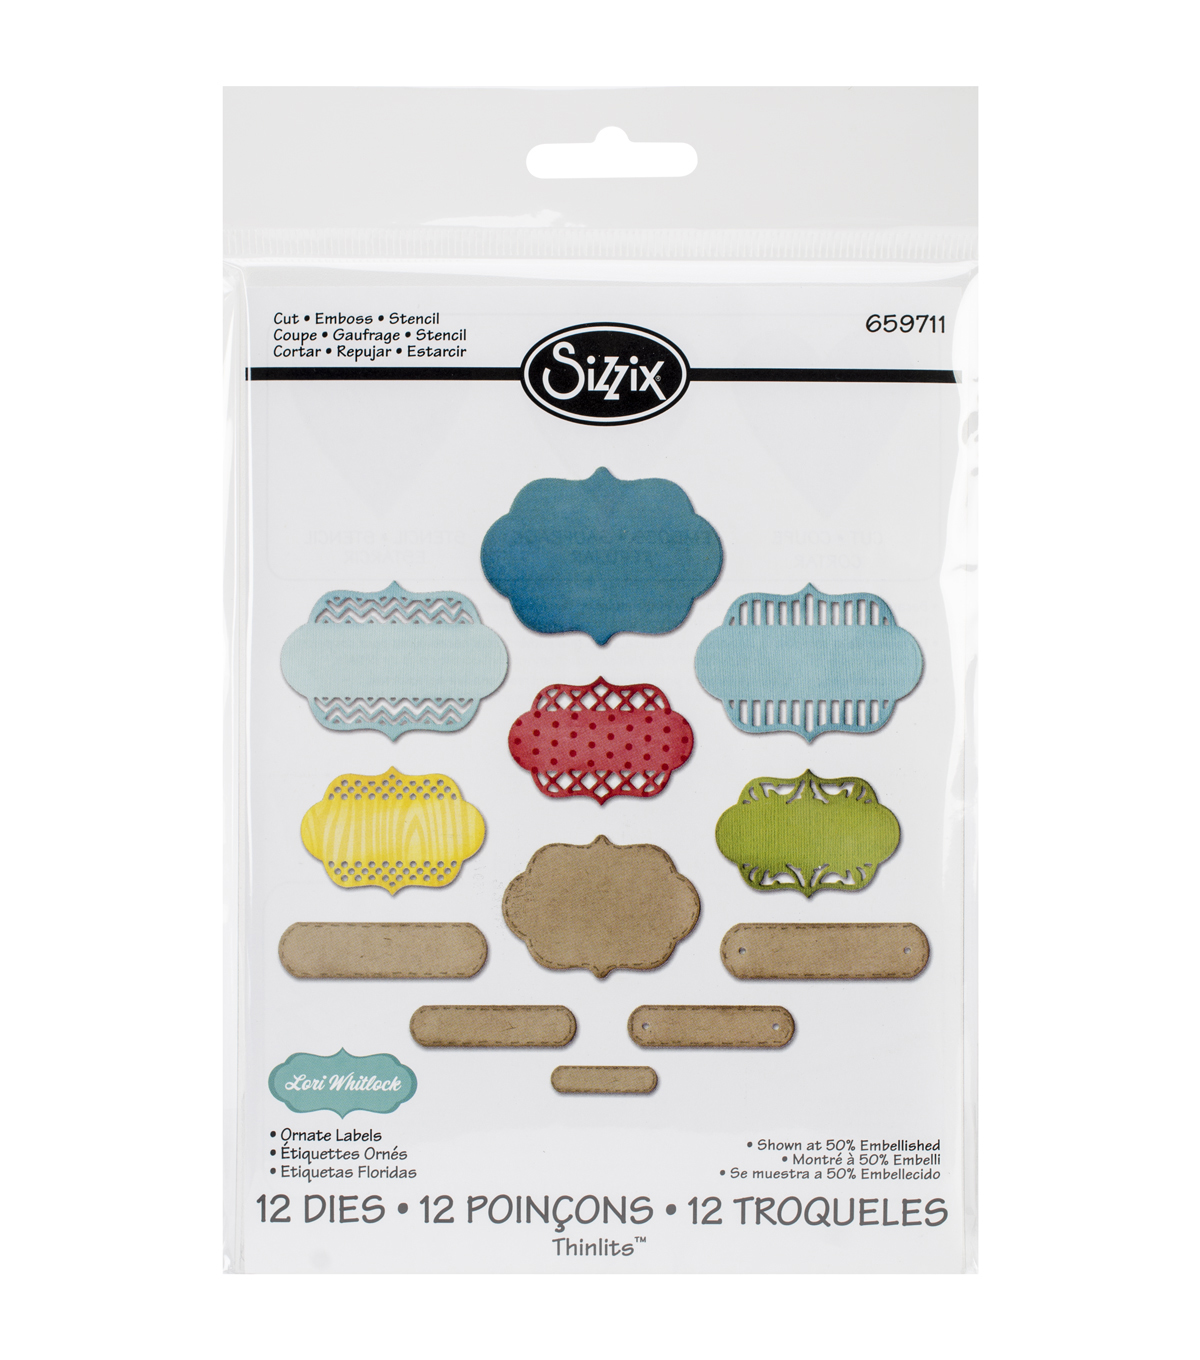 Sizzix Thinlits Lori Whitlock 12 Pack Dies-Ornate Labels